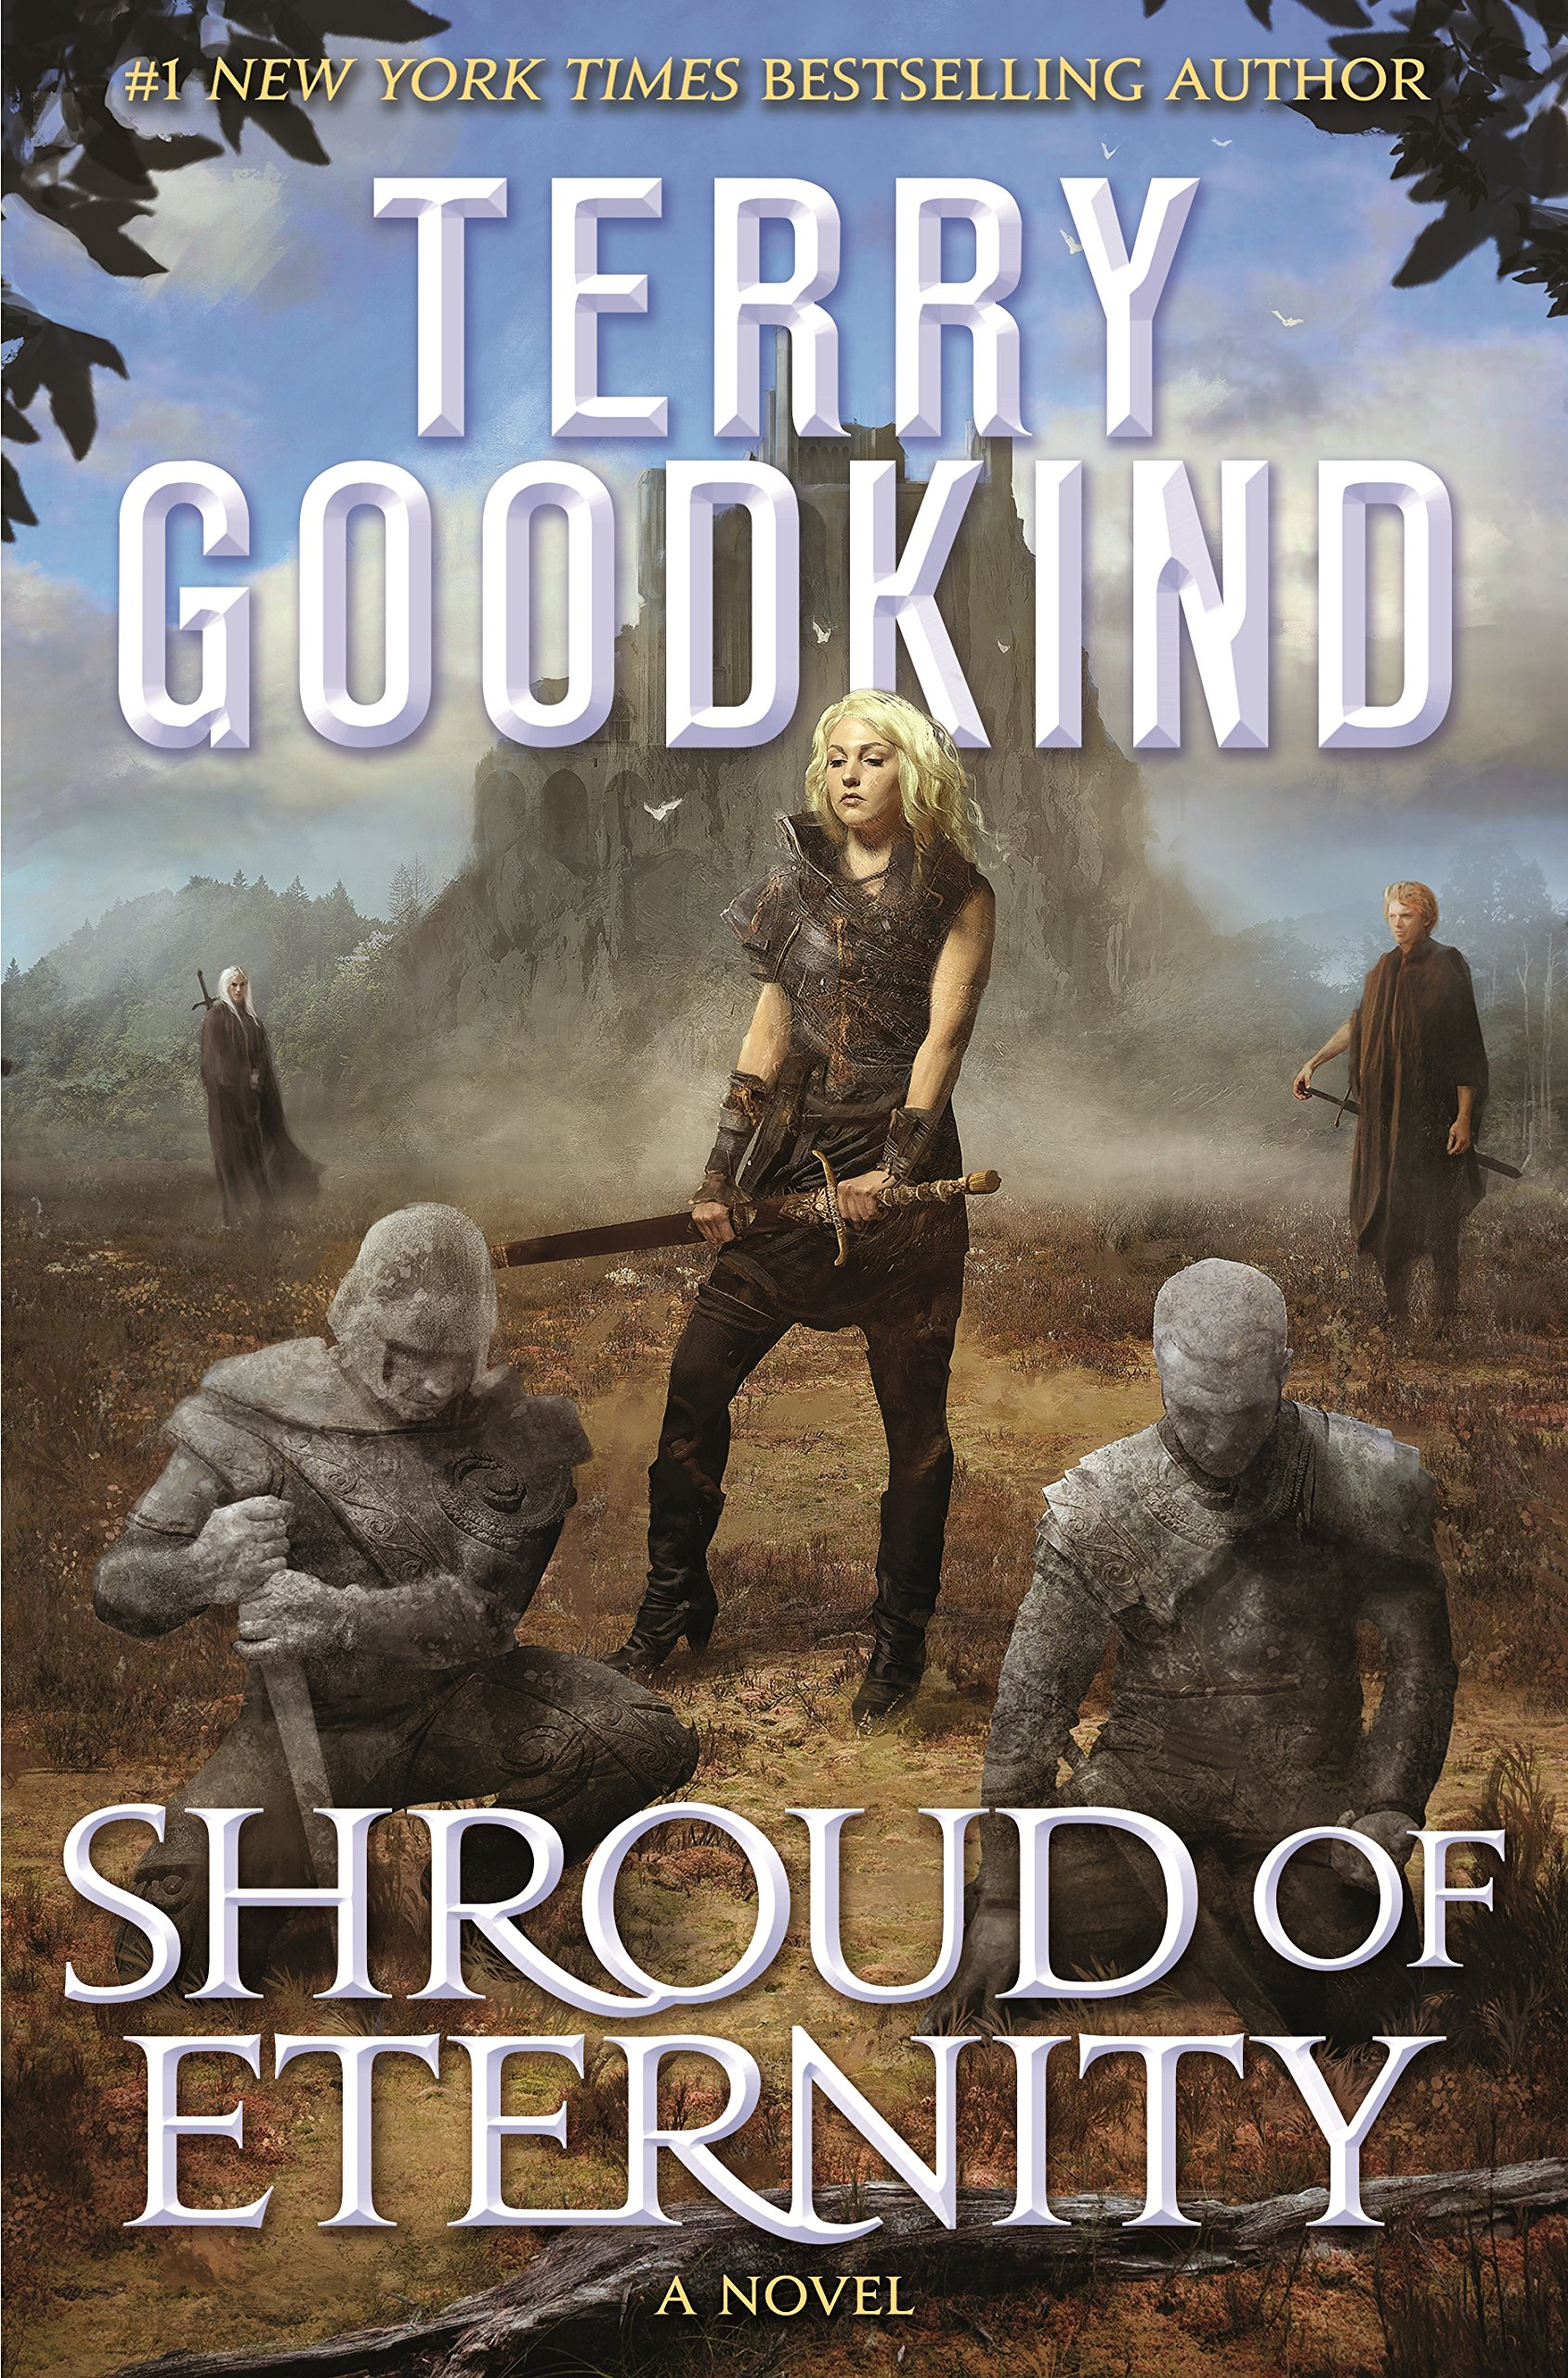 Book Cover Fantasy Wiki : Shroud of eternity sword truth wiki fandom powered